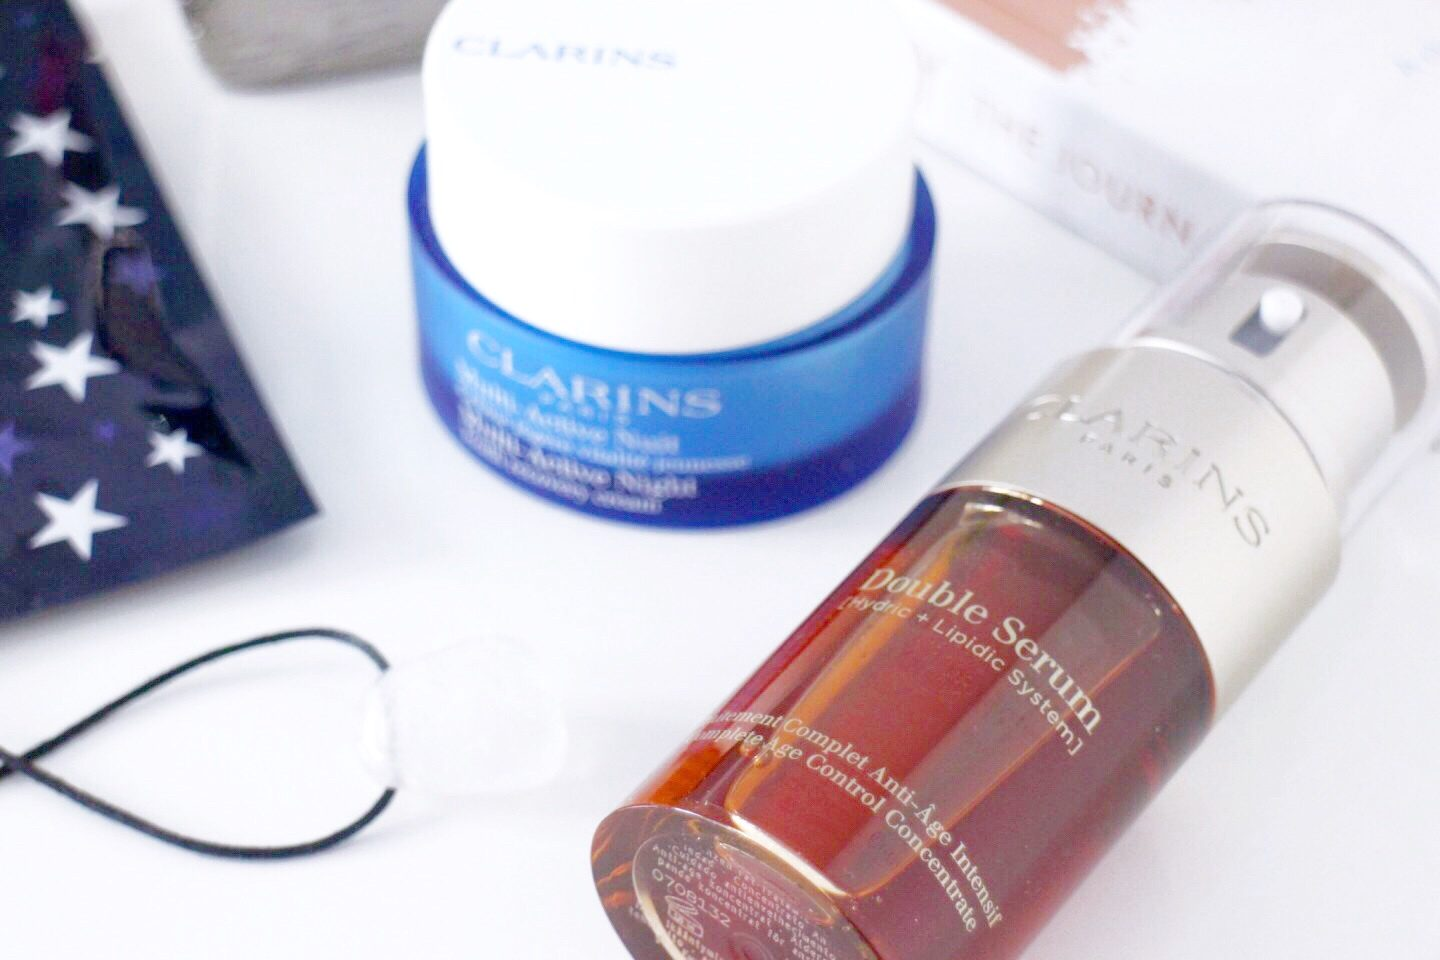 Bedtime Skincare Products